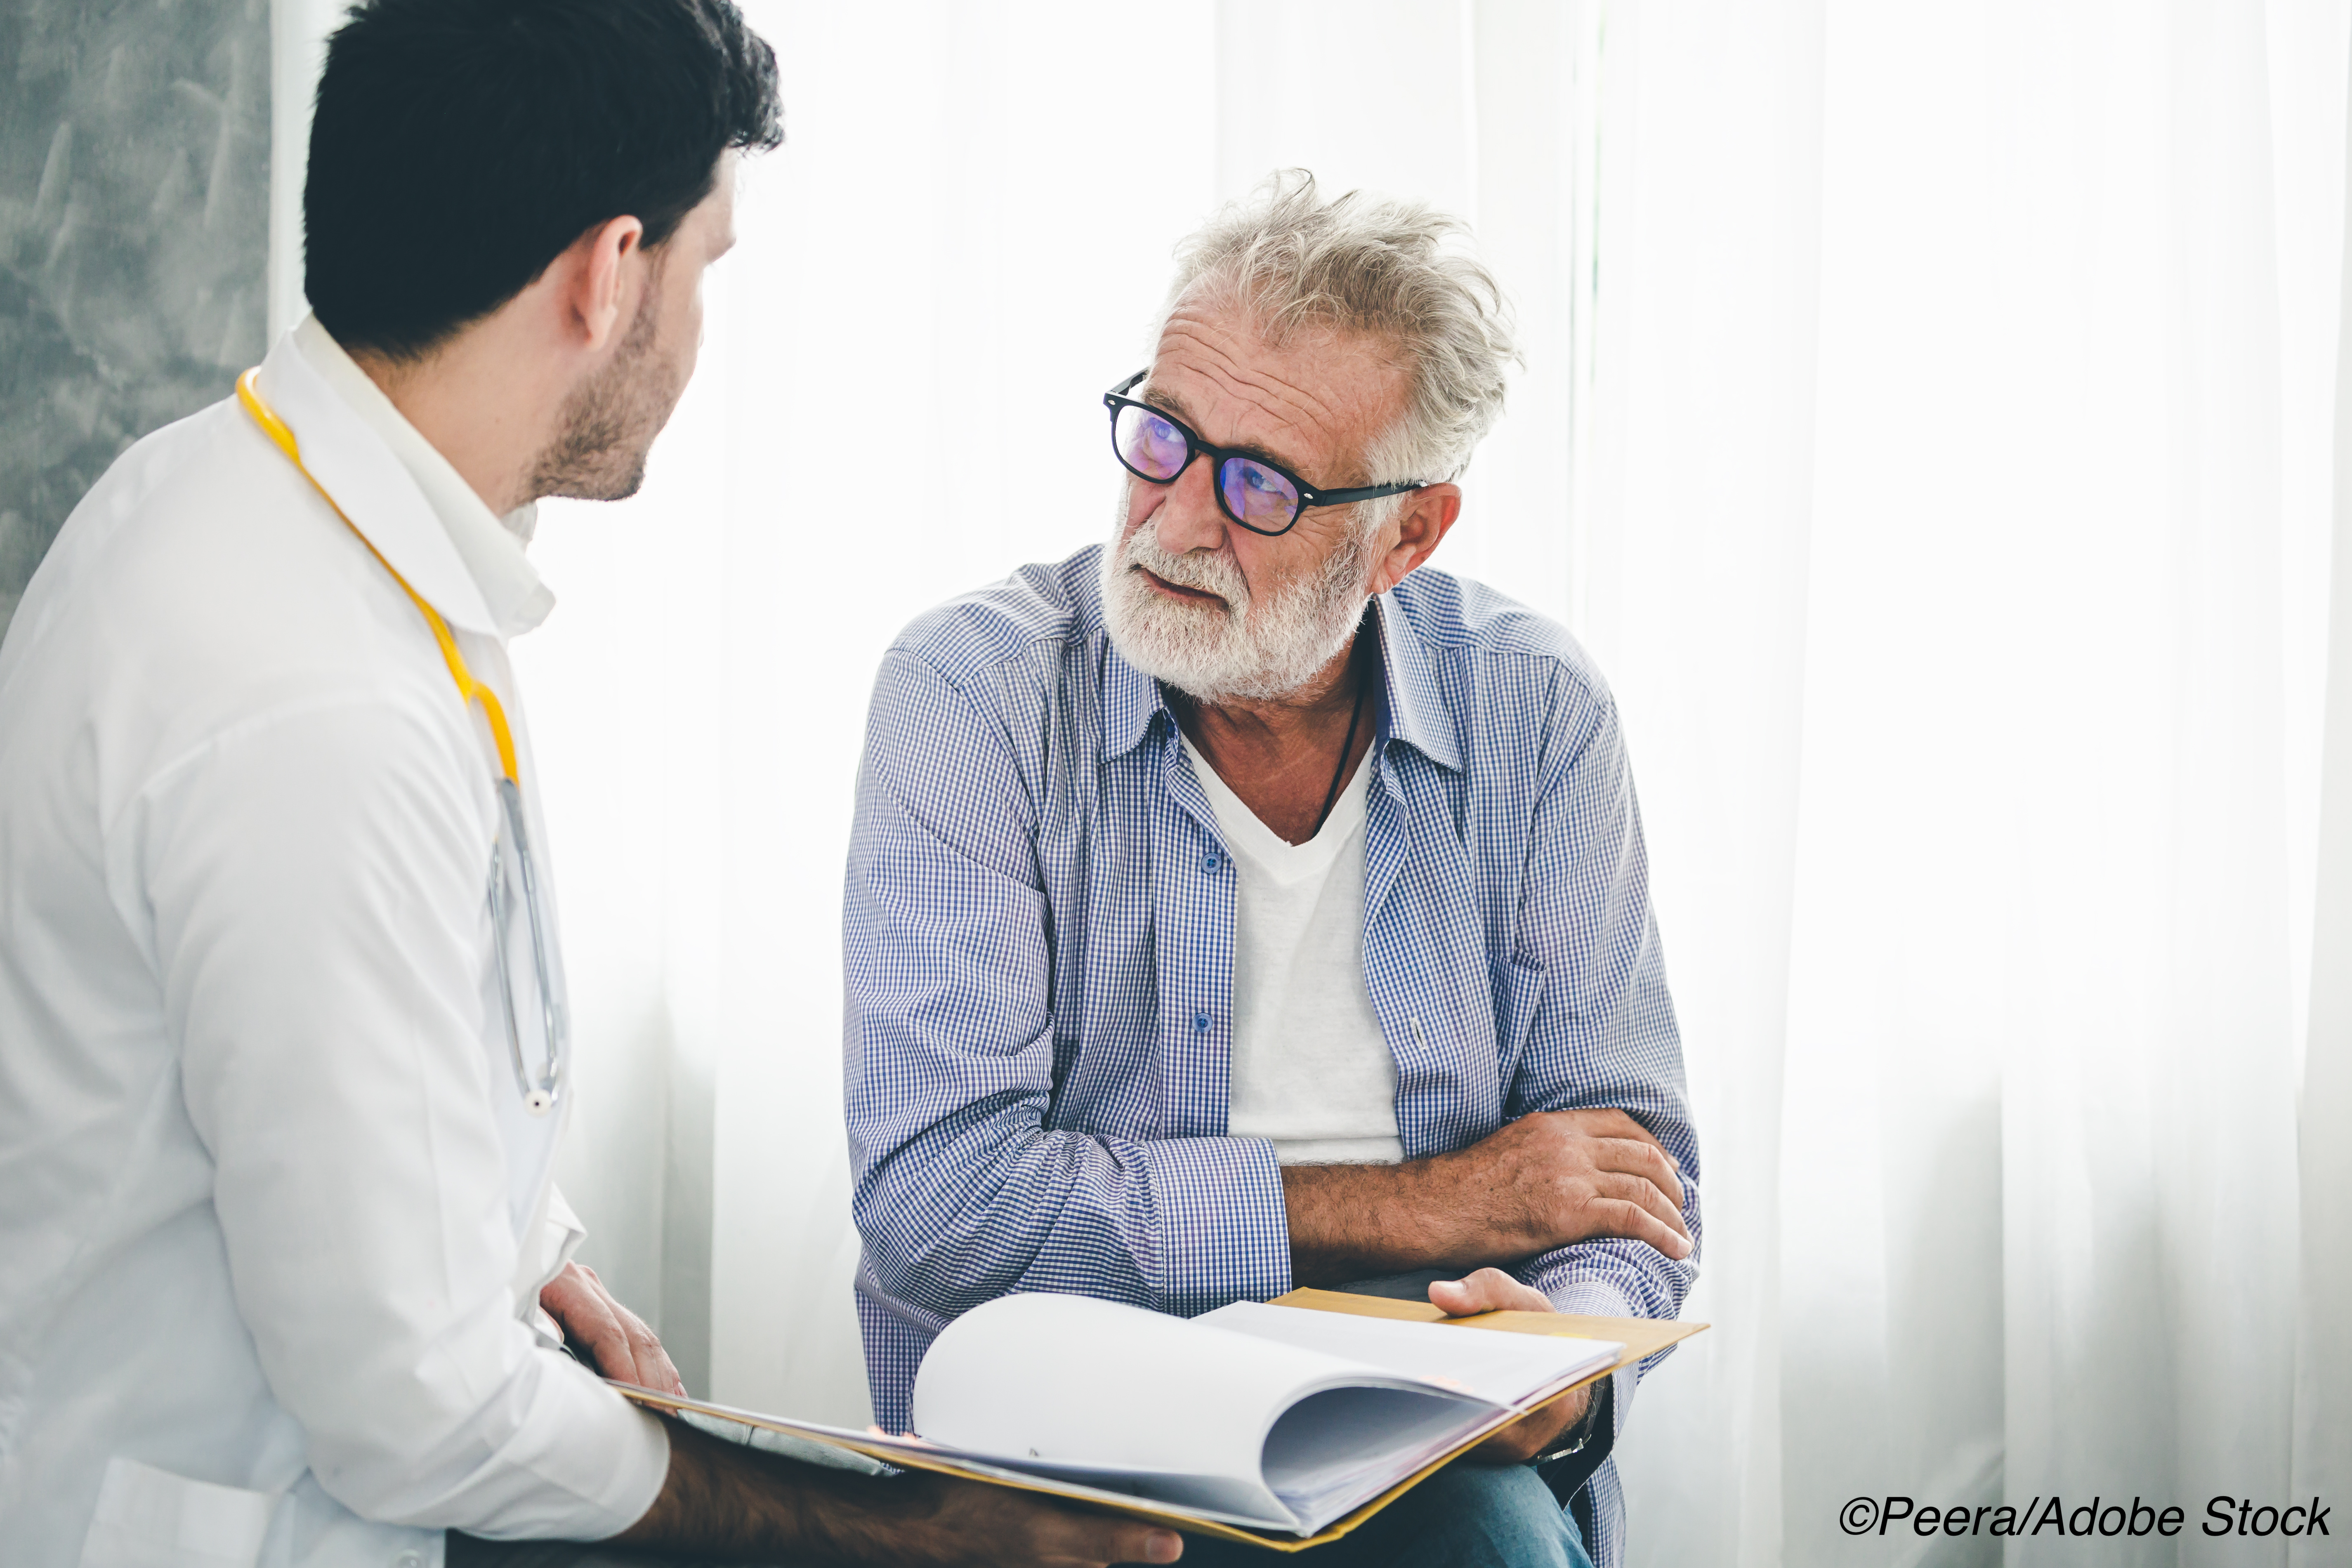 Barriers to Behavioral Health Services Exist for Seniors with Mental Illness, Even with Lower Co-Pays